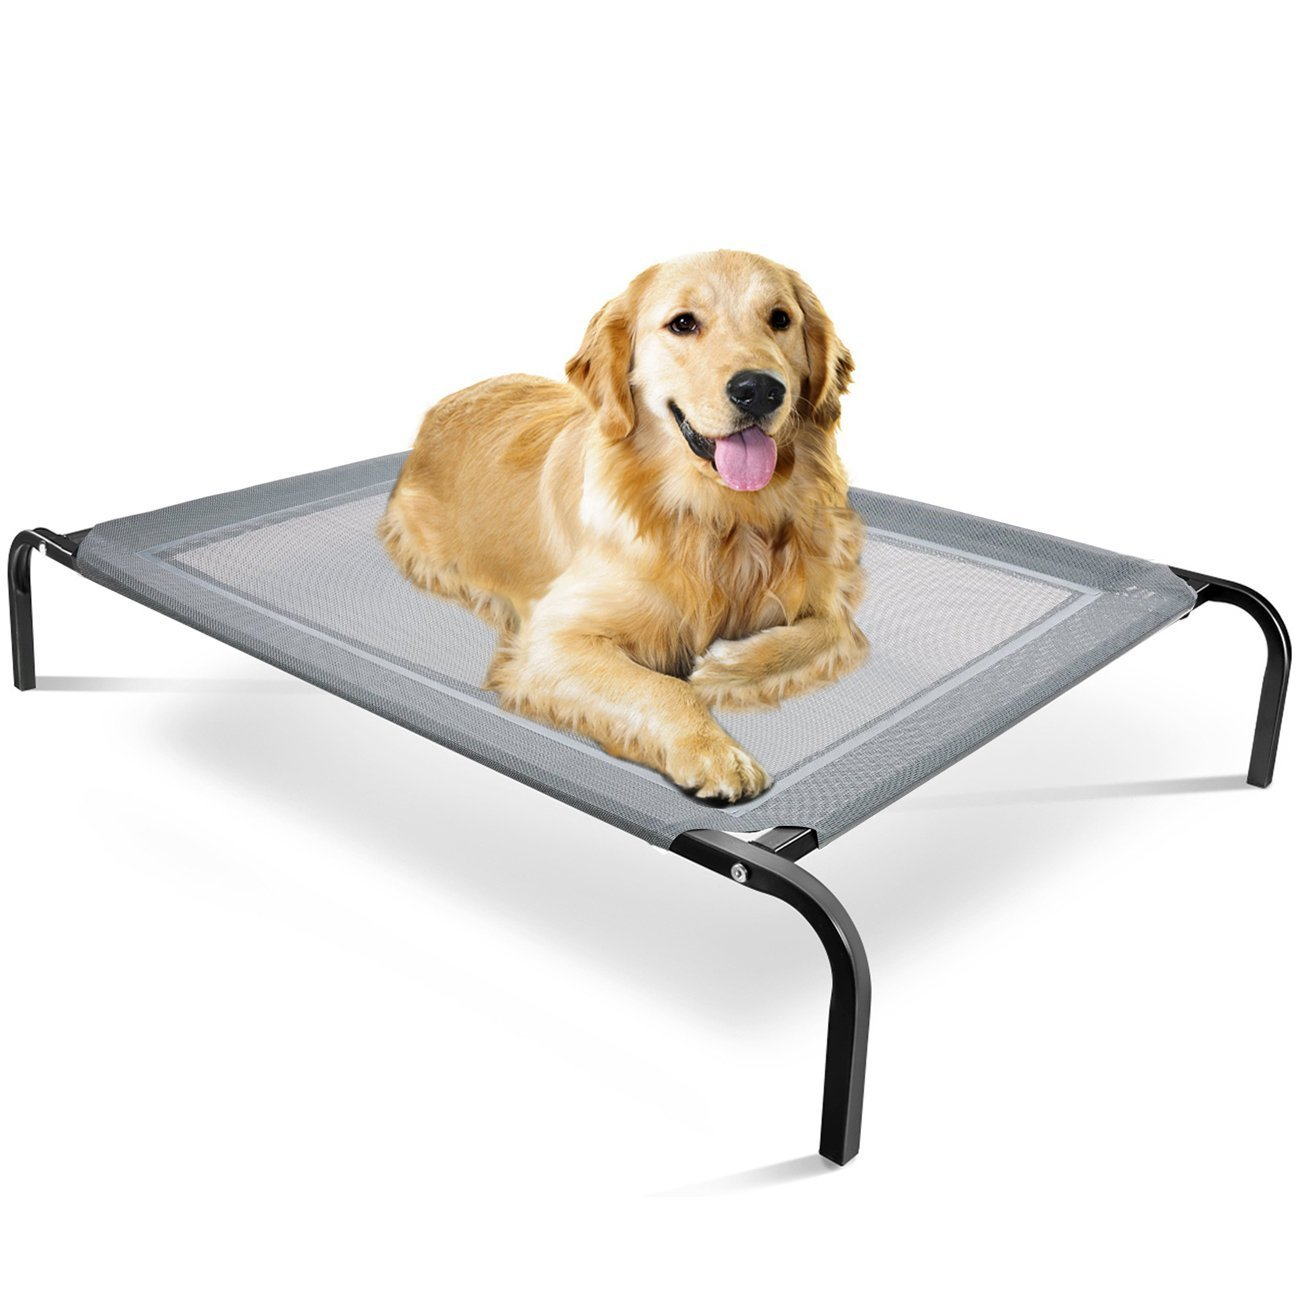 Paws & Pals ''Travel Gear Approved'' Steel-Framed Portable Elevated Pet Bed Cat/Dog, 43.5'' by 29.5'', Black